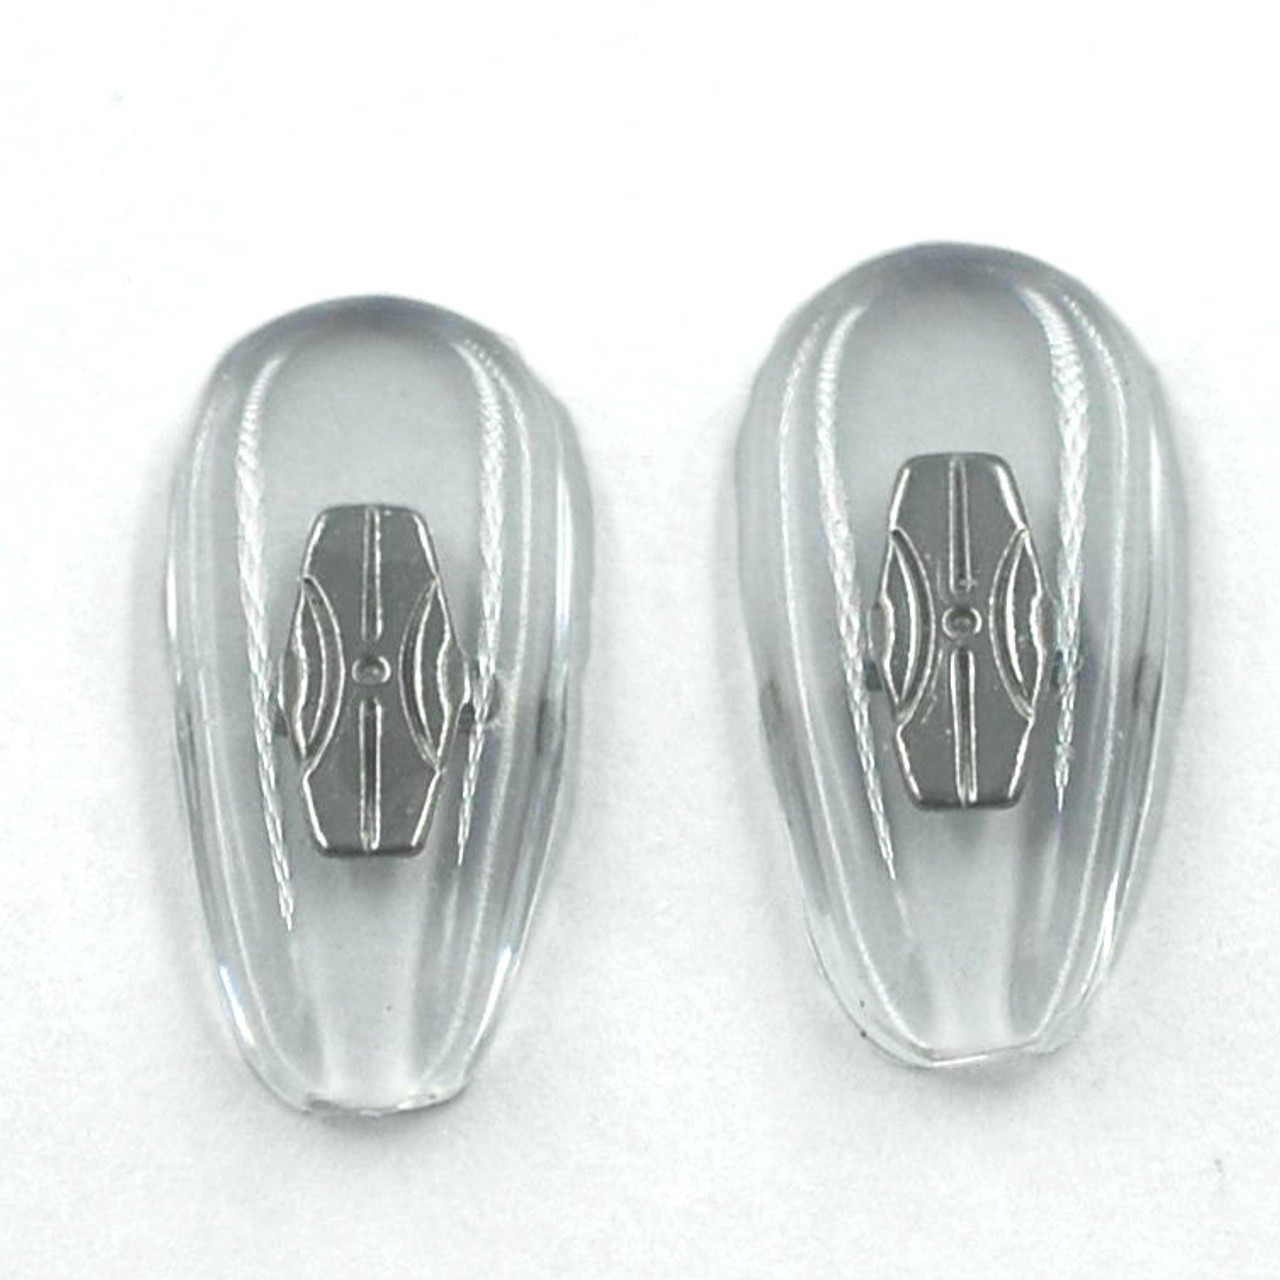 fbdb173917 Crimp-On nose pad 17mm length in Tear-drop shape made from Medium- ...